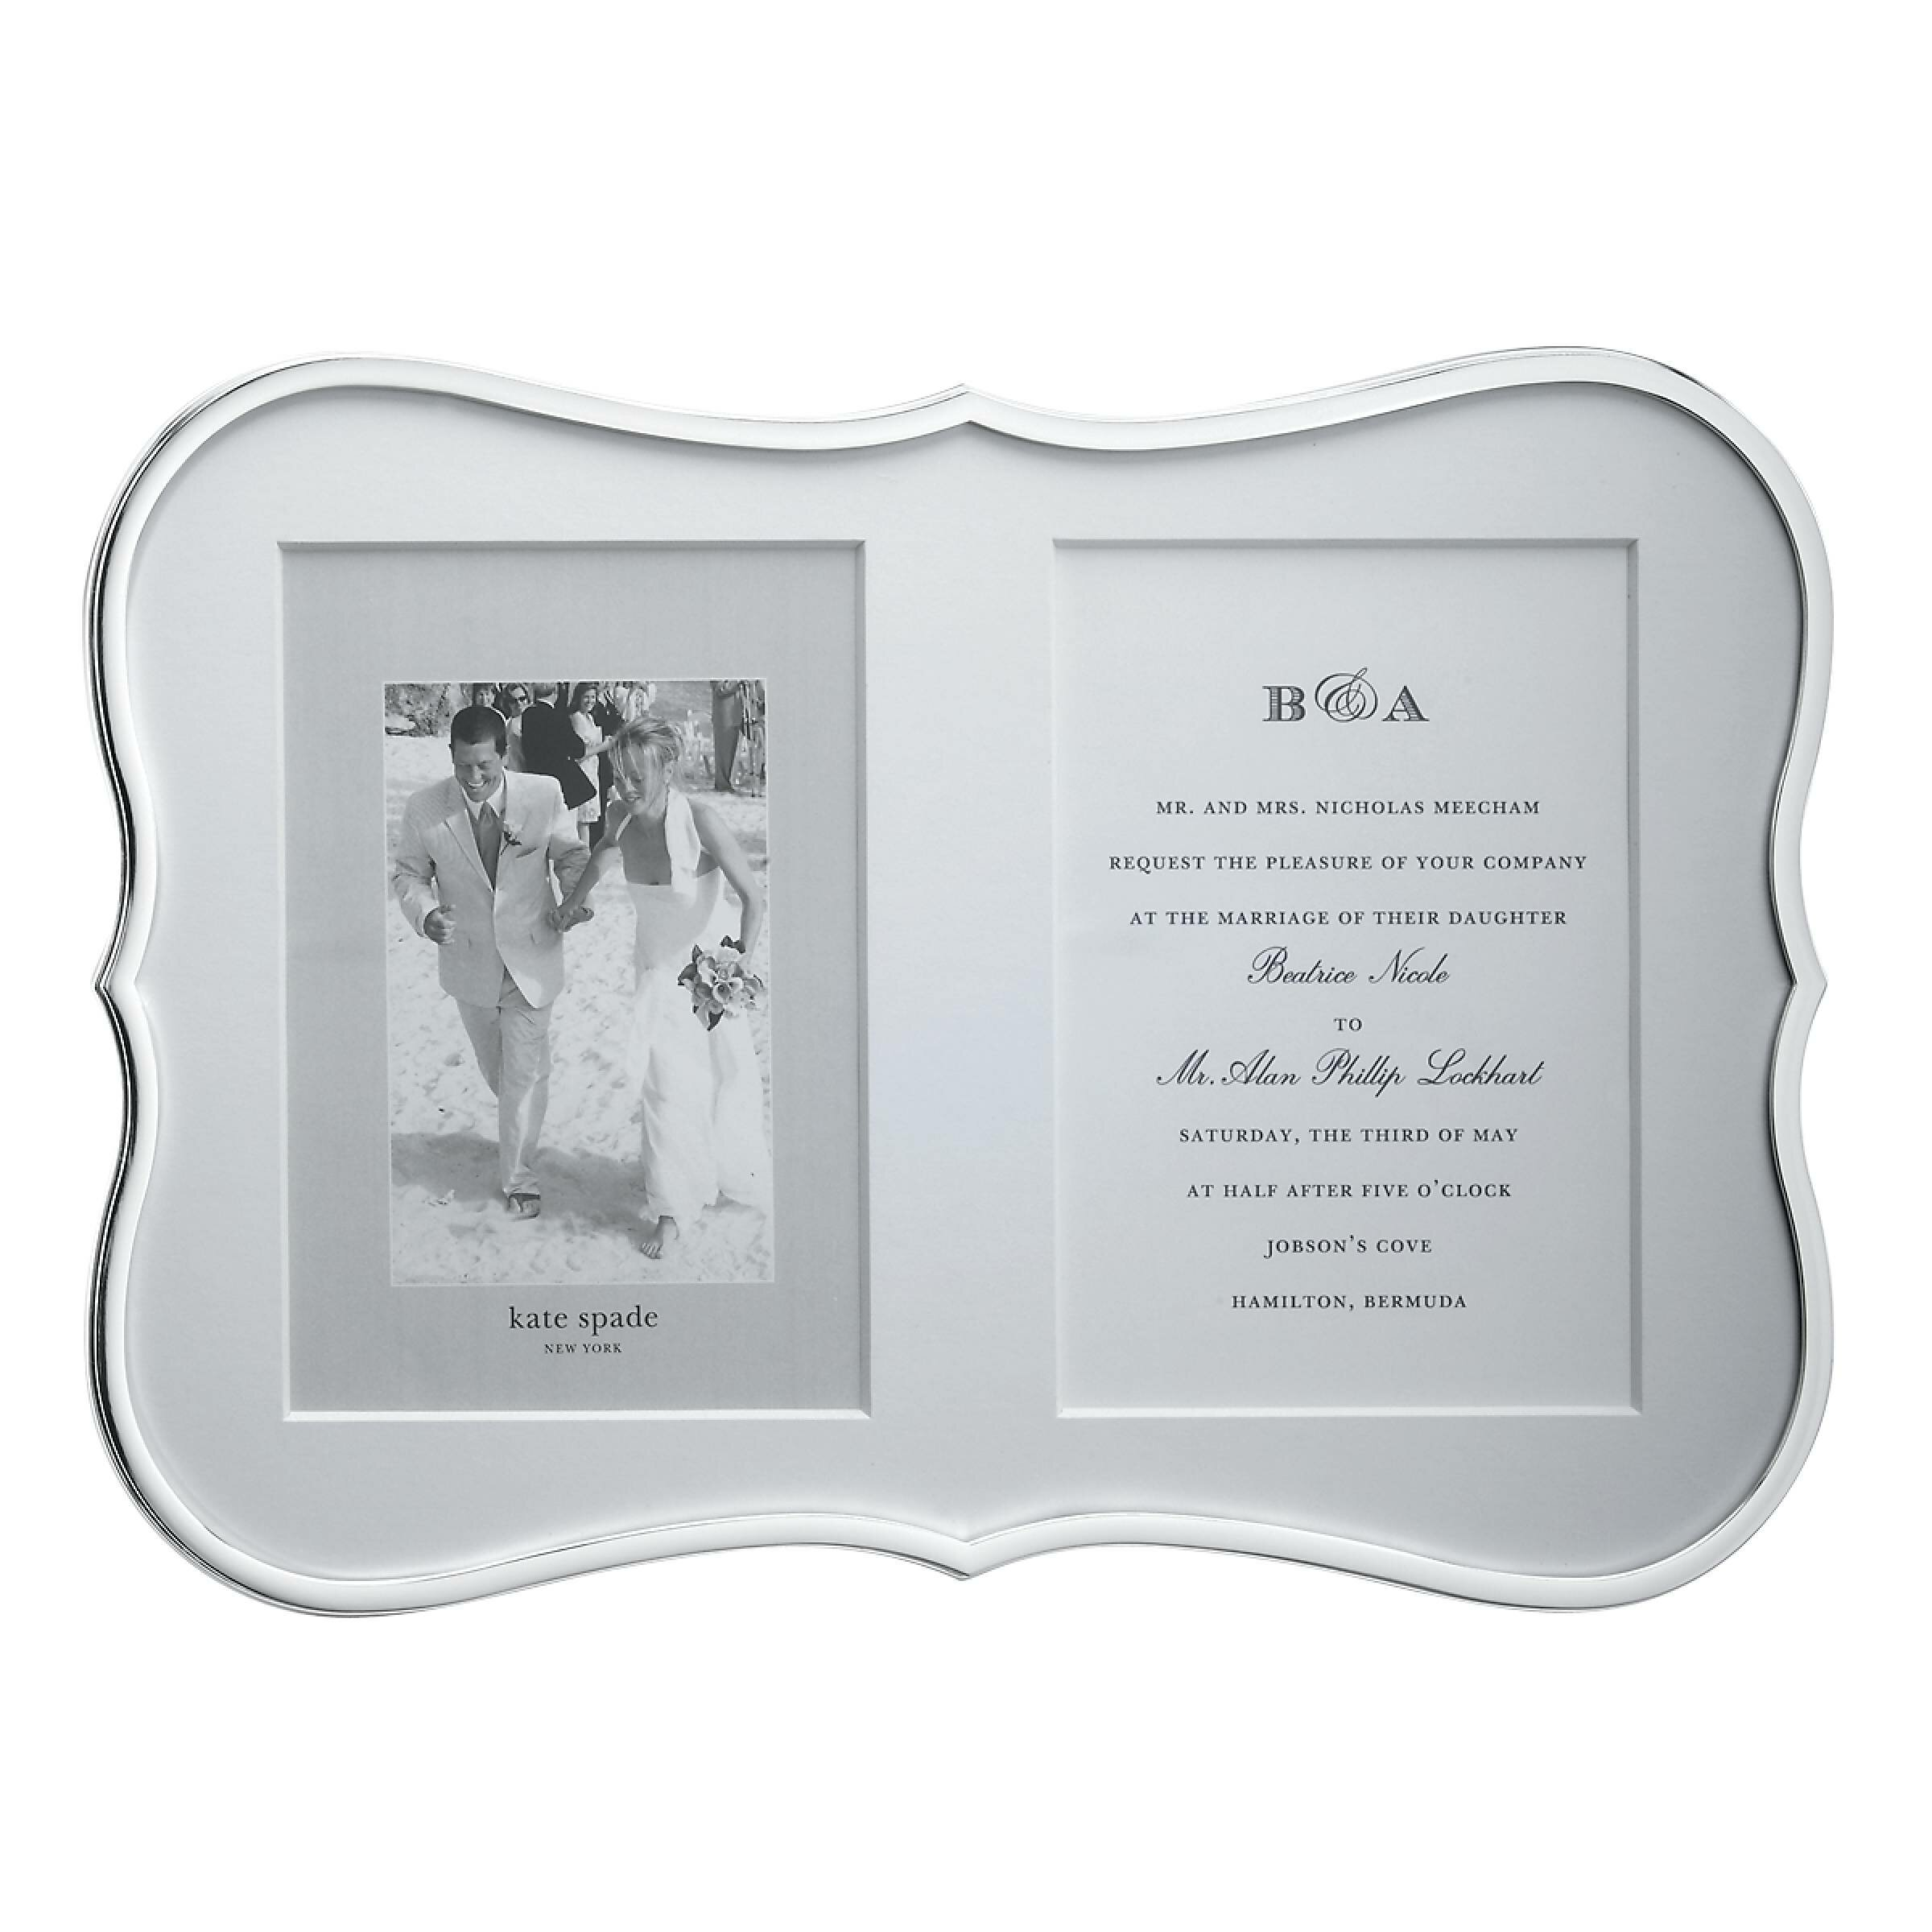 kate spade new york Crown Point Double Invitation Picture Frame ...